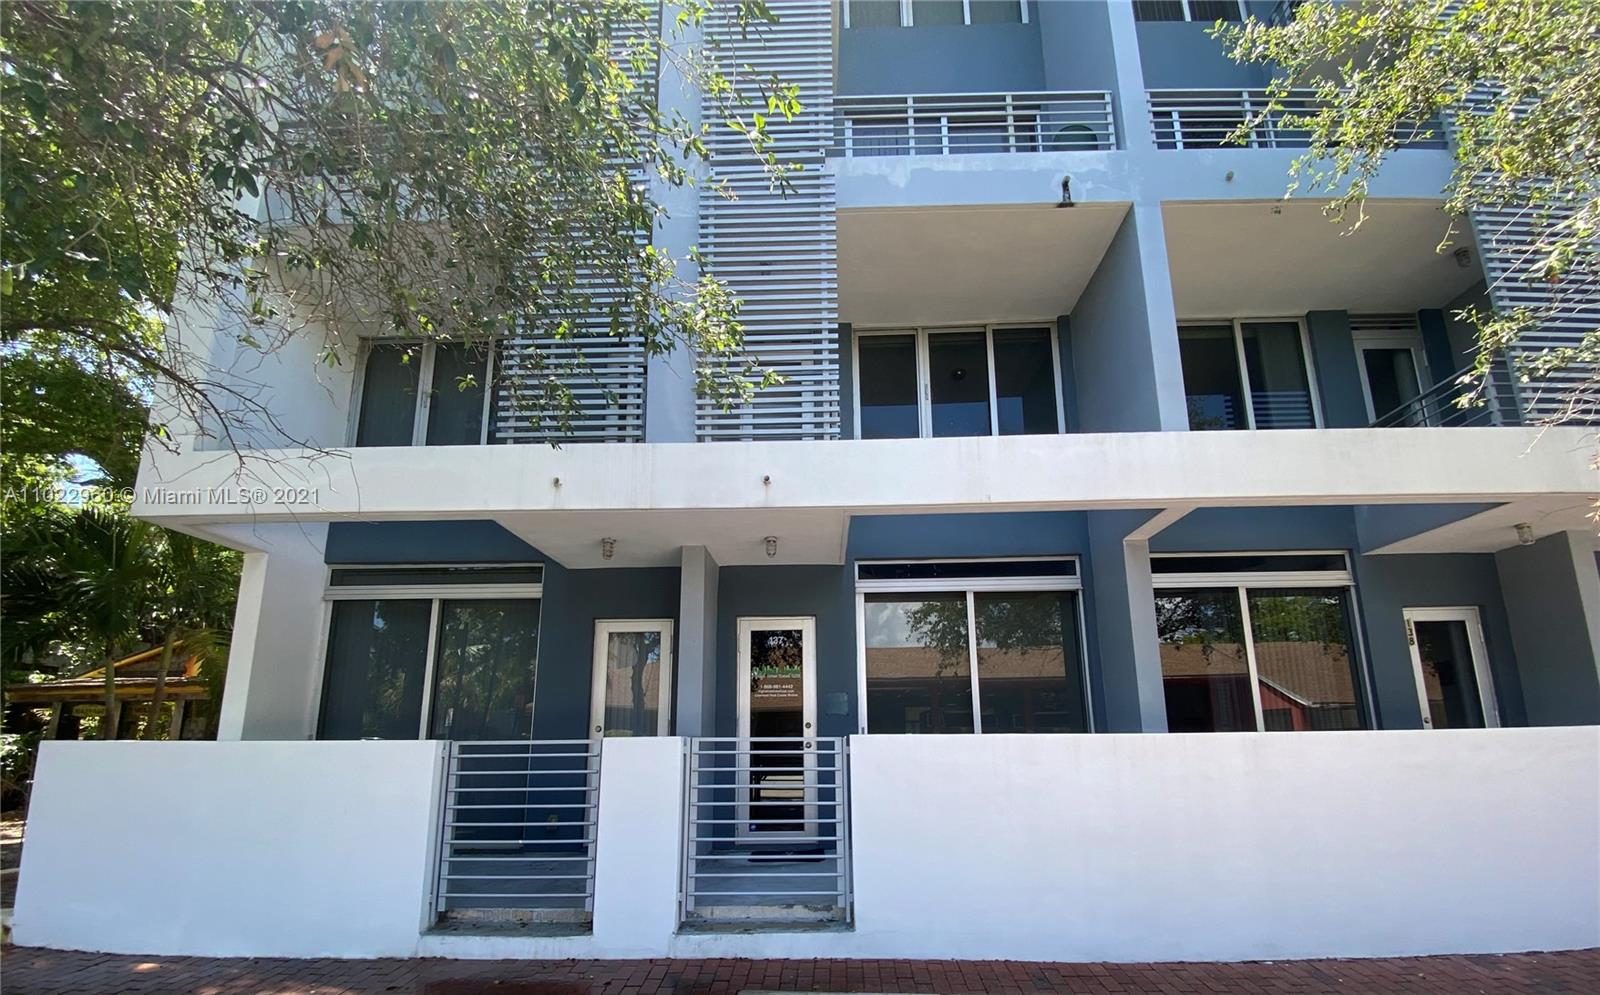 This spacious live/work unit offers an open floorplan, high ceilings, incredible amount of closet space, in unit washer / dryer, upper balcony and first floor patio space. This unique opportunity offers the right buyer the opportunity to both live and work in one of the best neighborhoods in Miami. Amenities include a fitness center, heated swimming pool, sundeck with chaise lounges and chairs and a whirlpool. A rare gem in the heart of Coconut Grove and just minutes south of Downtown, Brickell and Miami Beach. The charming boutique building is directly across from the redesigned Cocowalk and Mayfair Hotel. Pedestrian-friendly neighborhood filled with the perfect combination of chef-driven restaurants, sidewalk cafes, boutiques, community events and Kennedy Park.